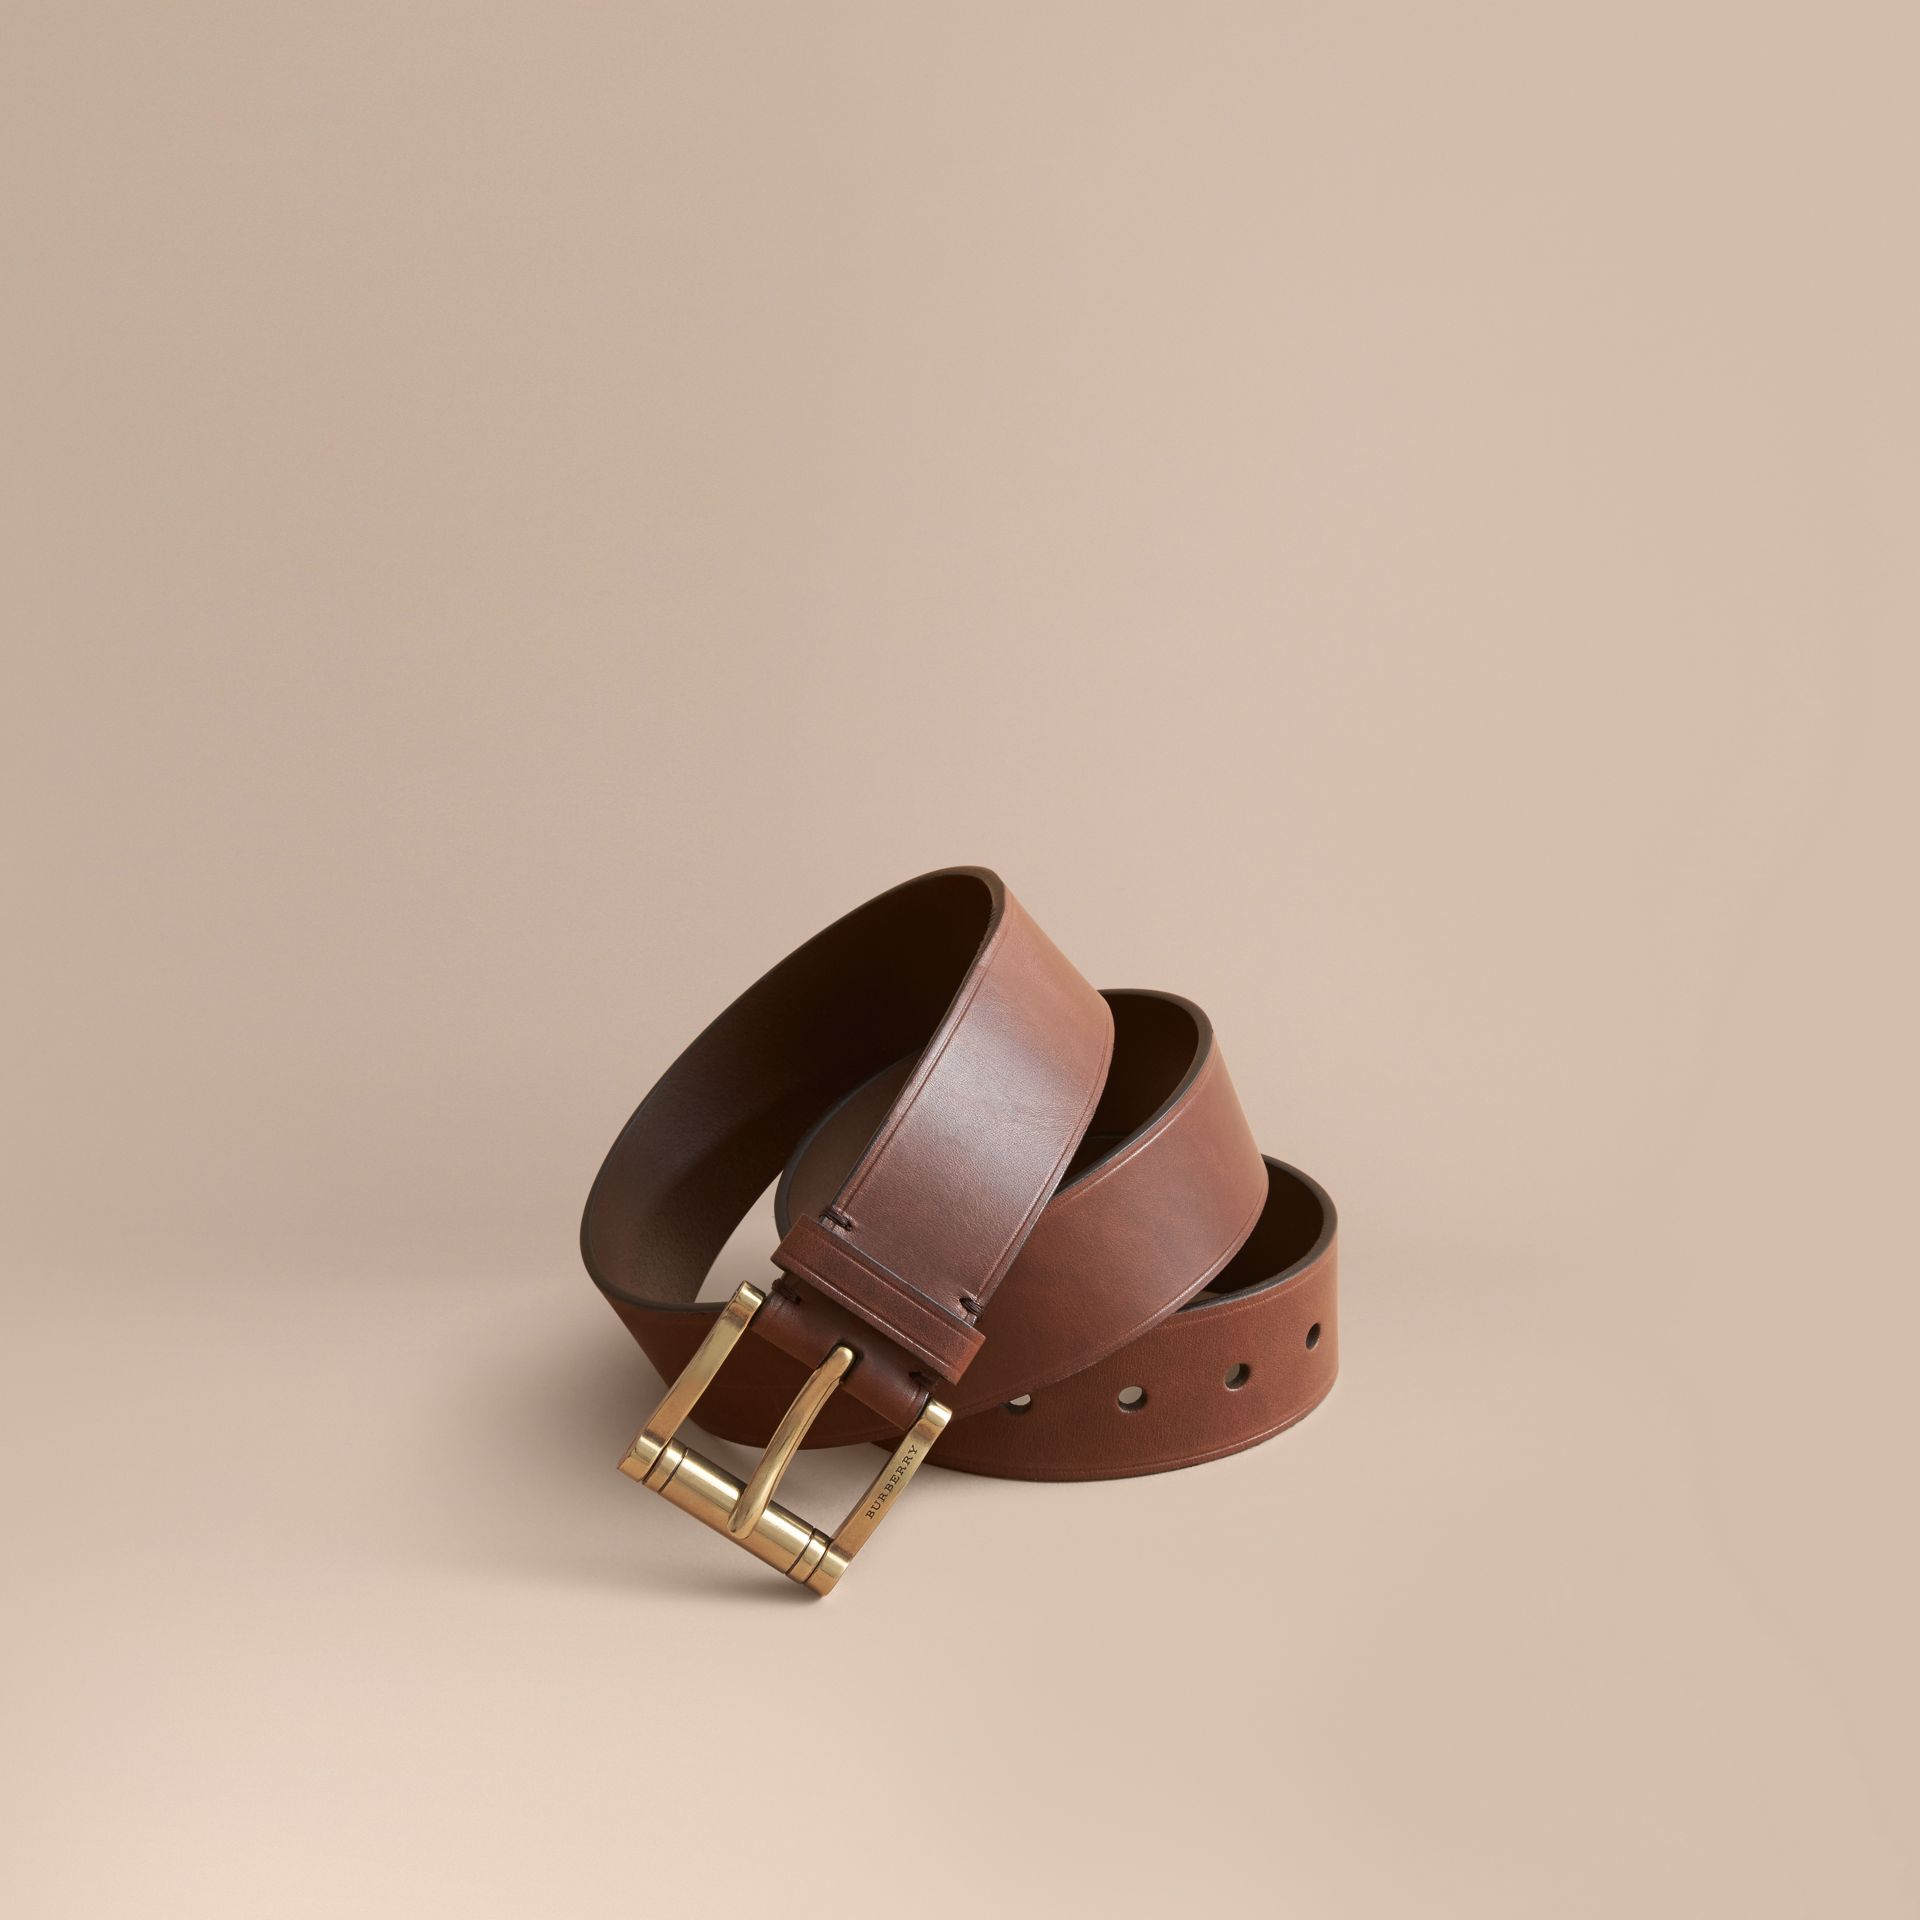 Brass Buckle Leather Belt in Auburn - Men | Burberry Hong Kong - gallery image 1